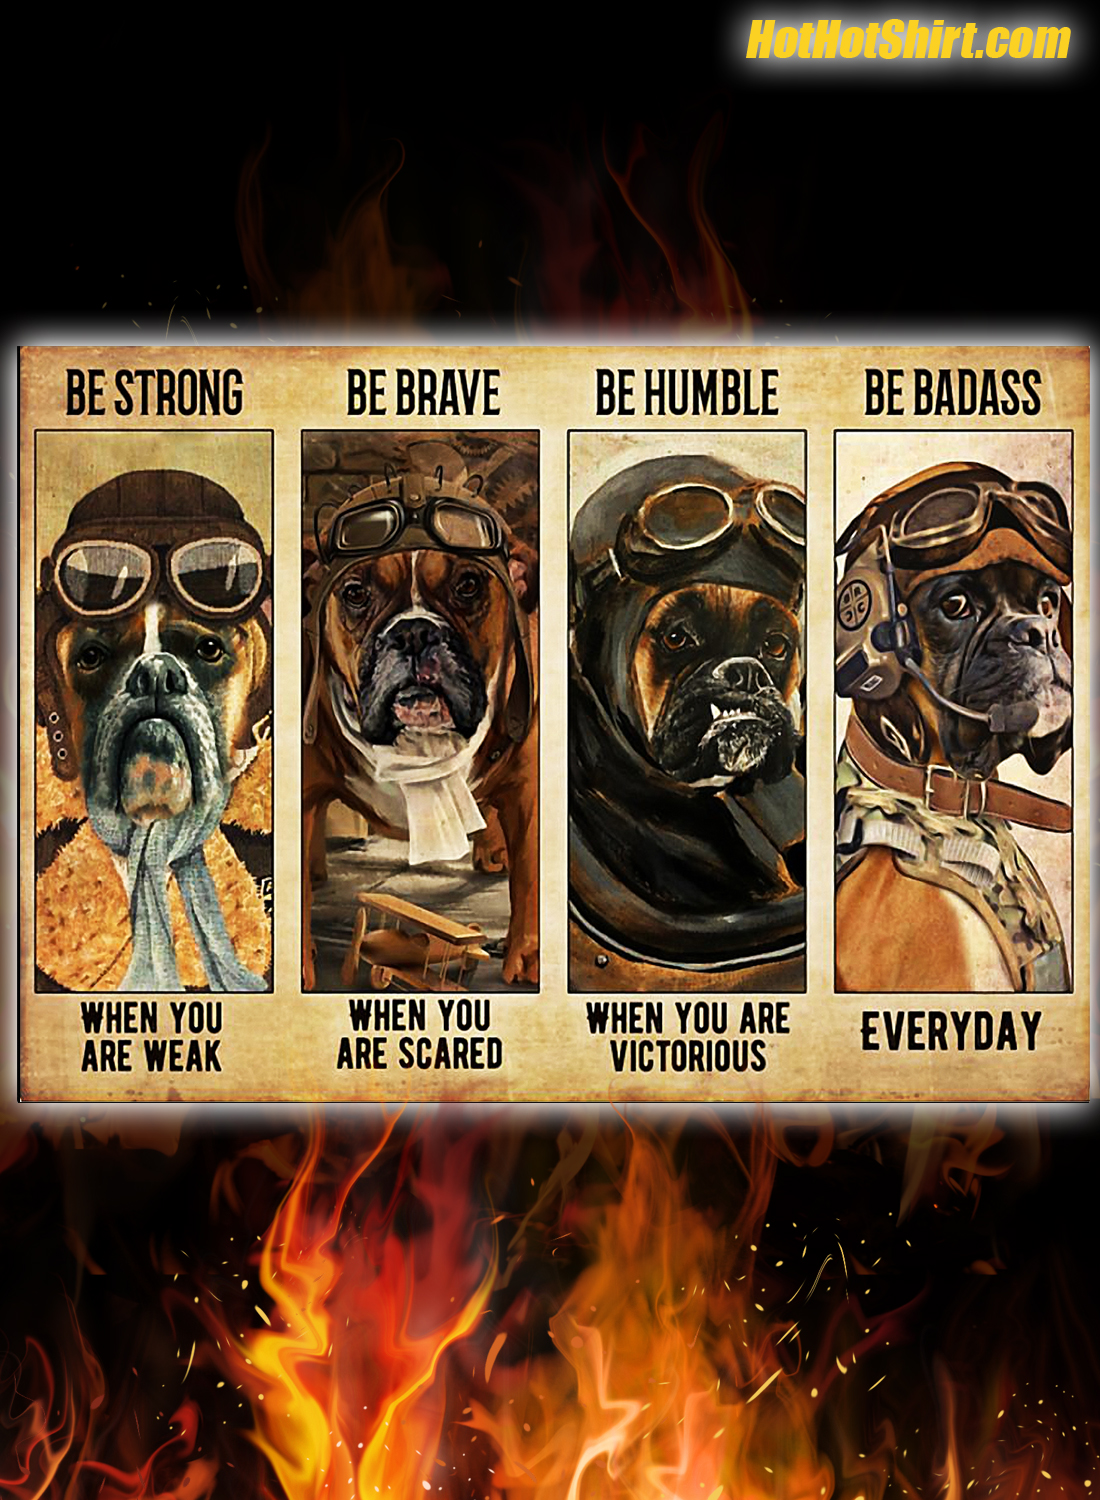 Boxer pilot be strong be brave be humble be badass poster 1